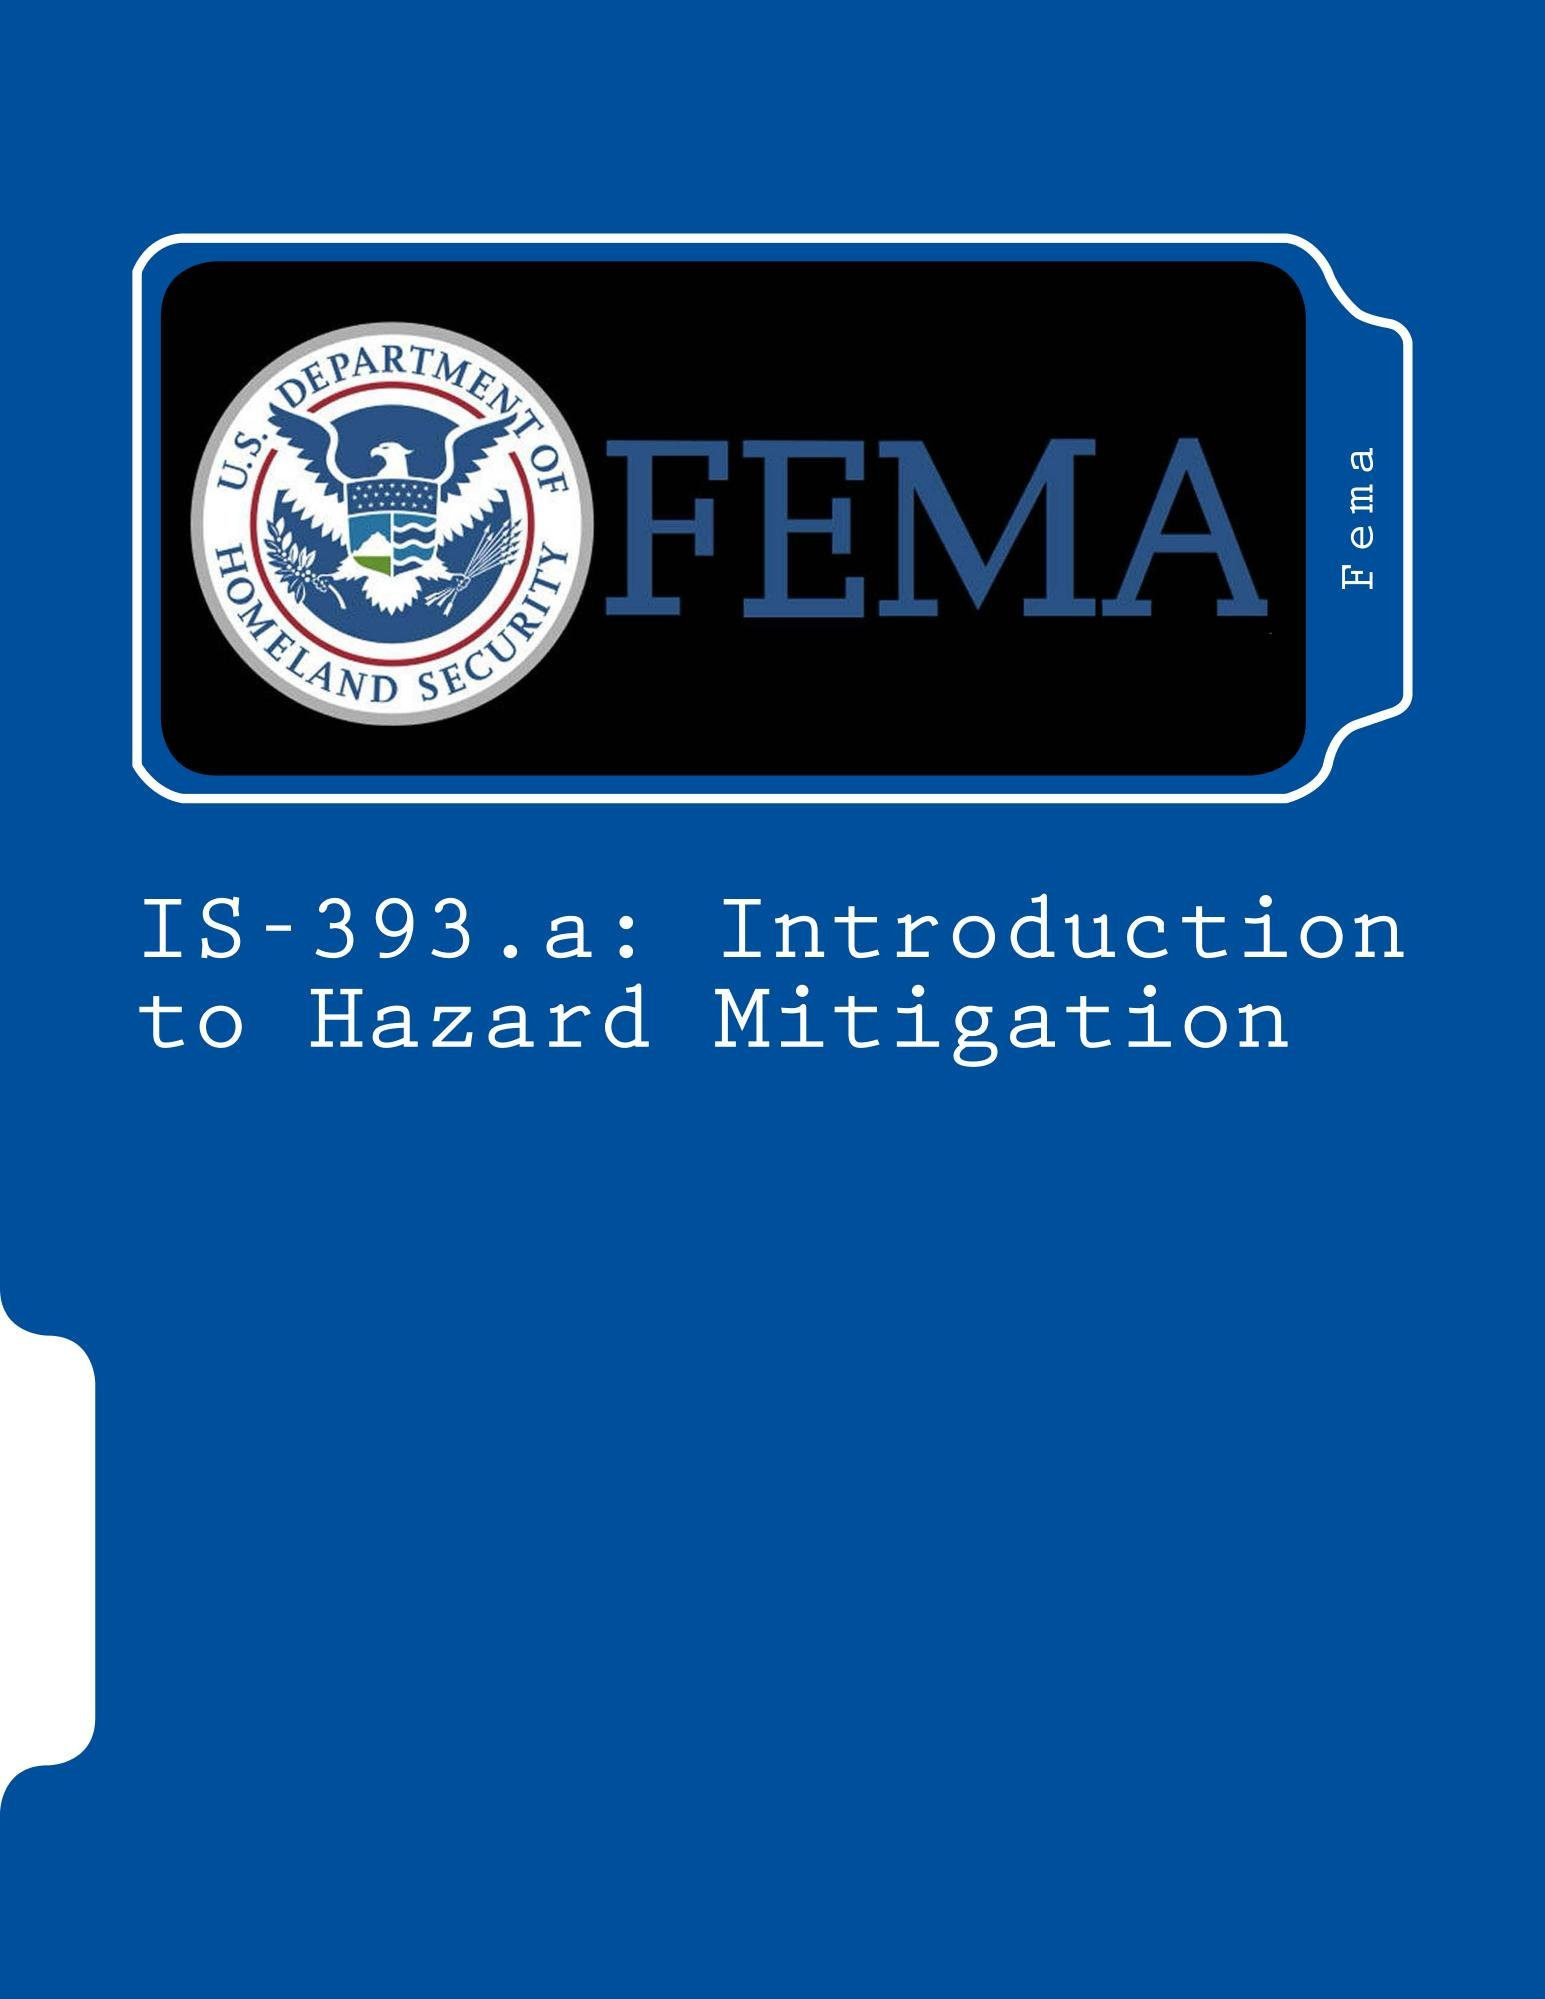 IS-393.a: Introduction to Hazard Mitigation